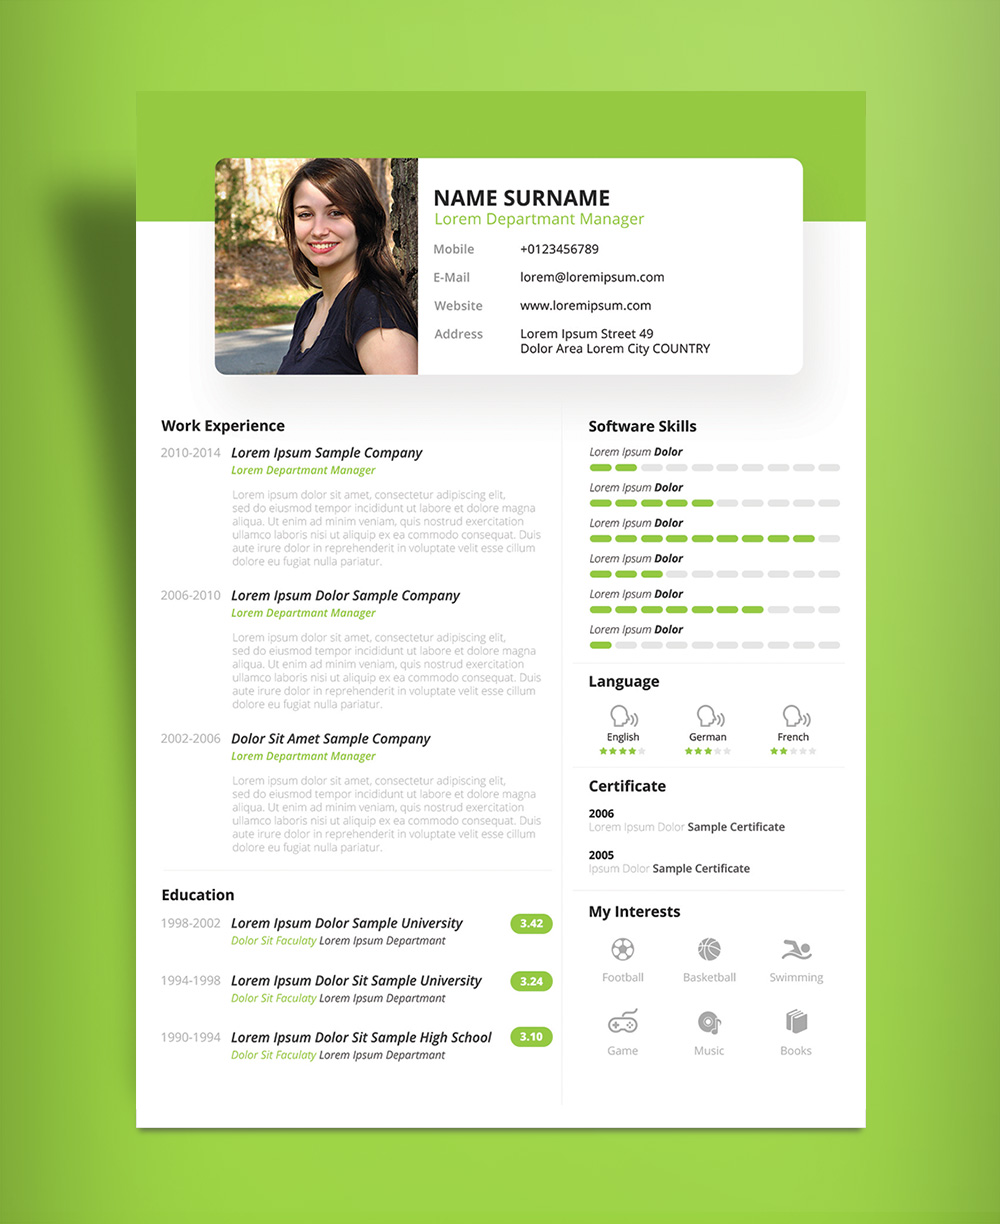 Free Beautiful Resume (CV) Design Template PSD & PPT File (4)